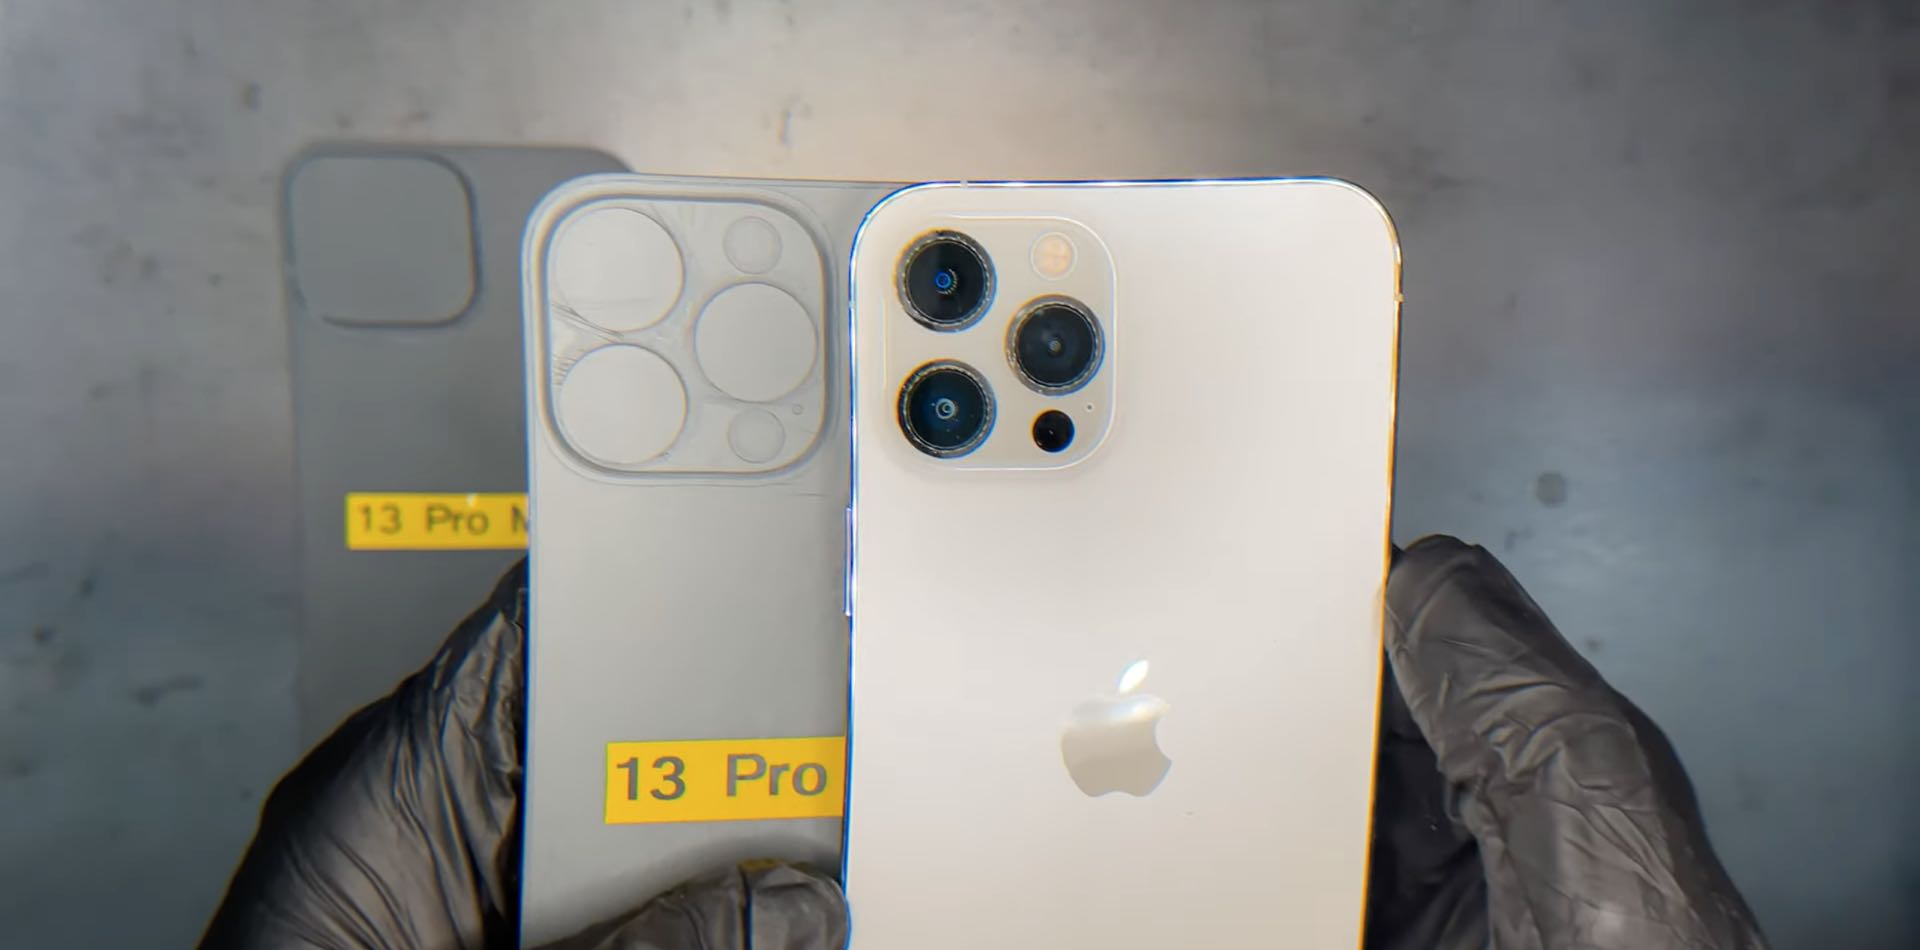 A still from EverythingApplePro's video showing significantly larger lenses on a 3D-printed iPhone 13 Pro Max mockup